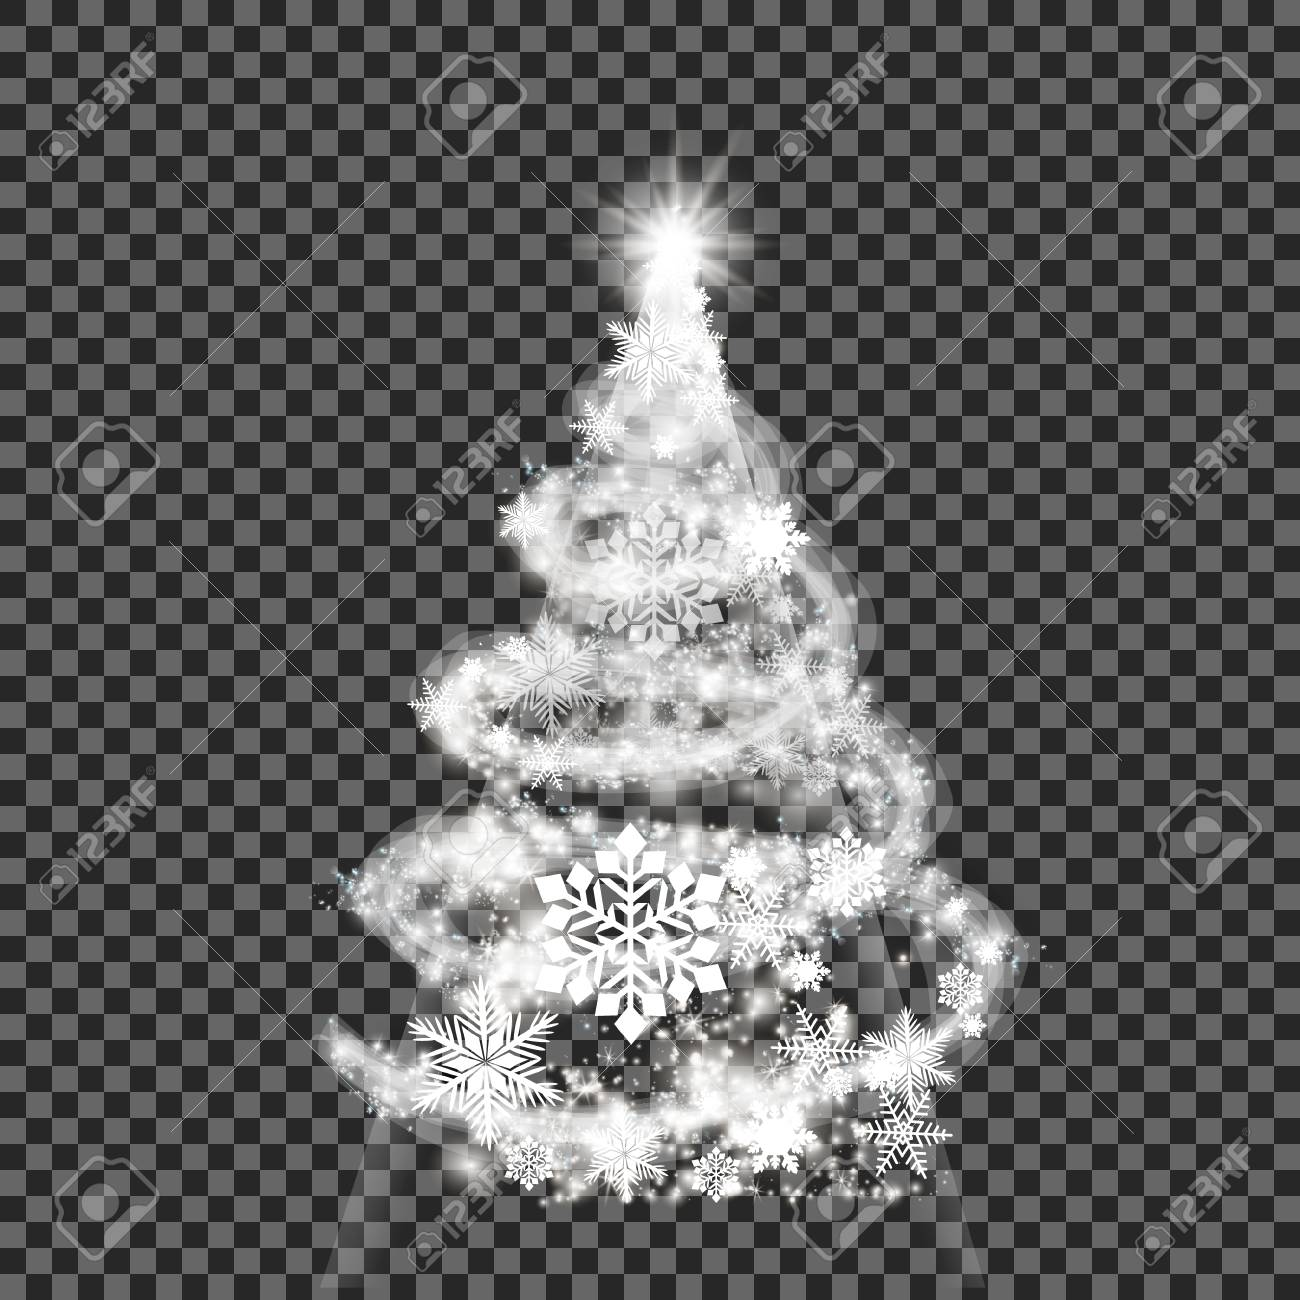 Silver Christmas Tree On Transparent Background Royalty Free Cliparts Vectors And Stock Illustration Image 84589295